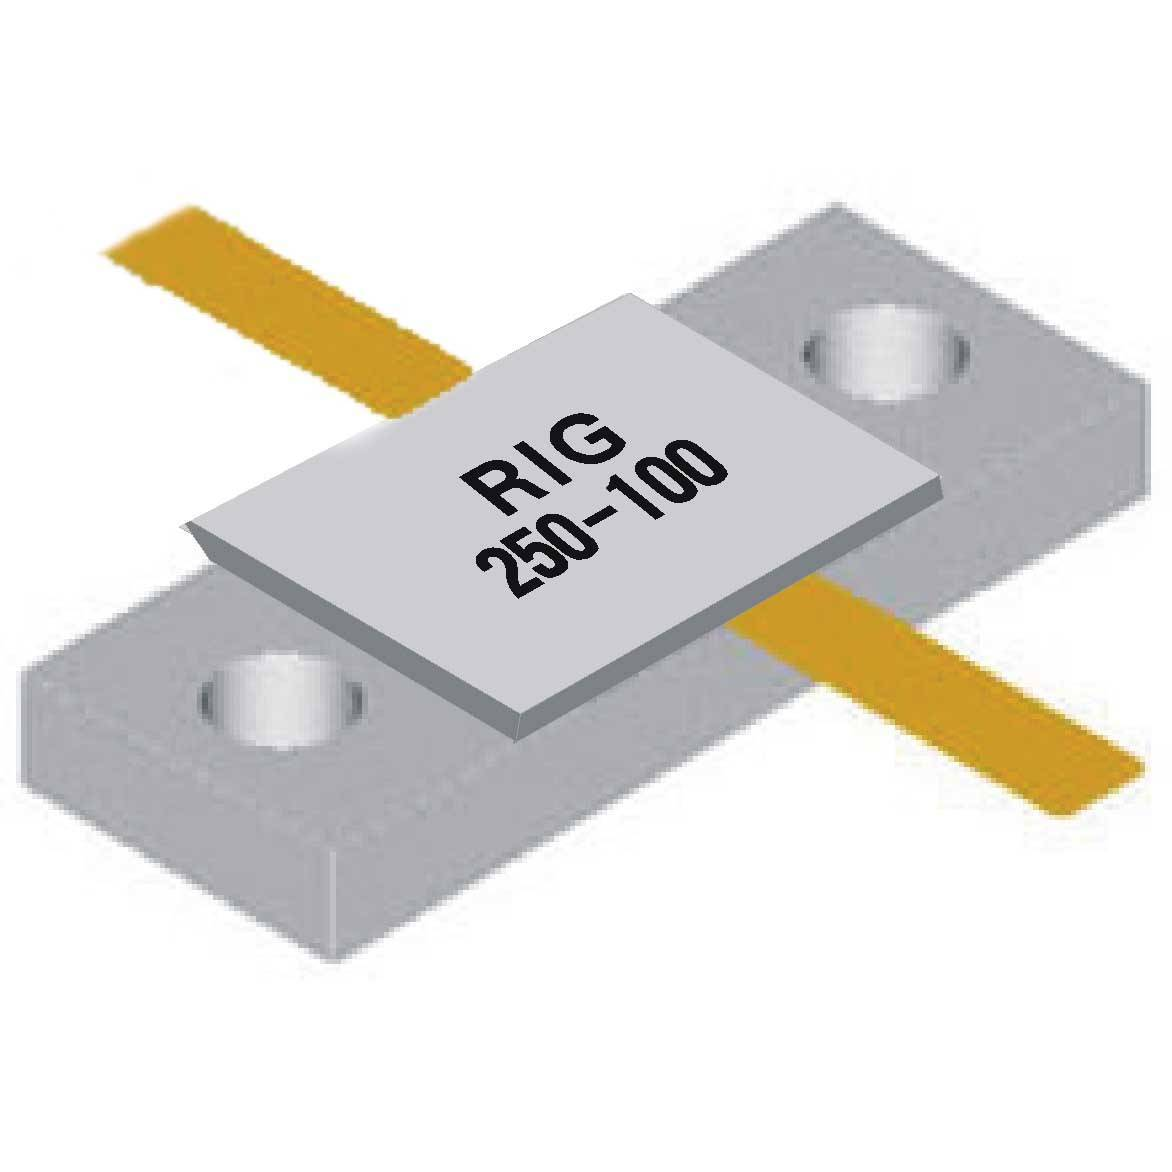 Power supply and resistance terminal load resistance loading piece - microstrip rf resistance high-p